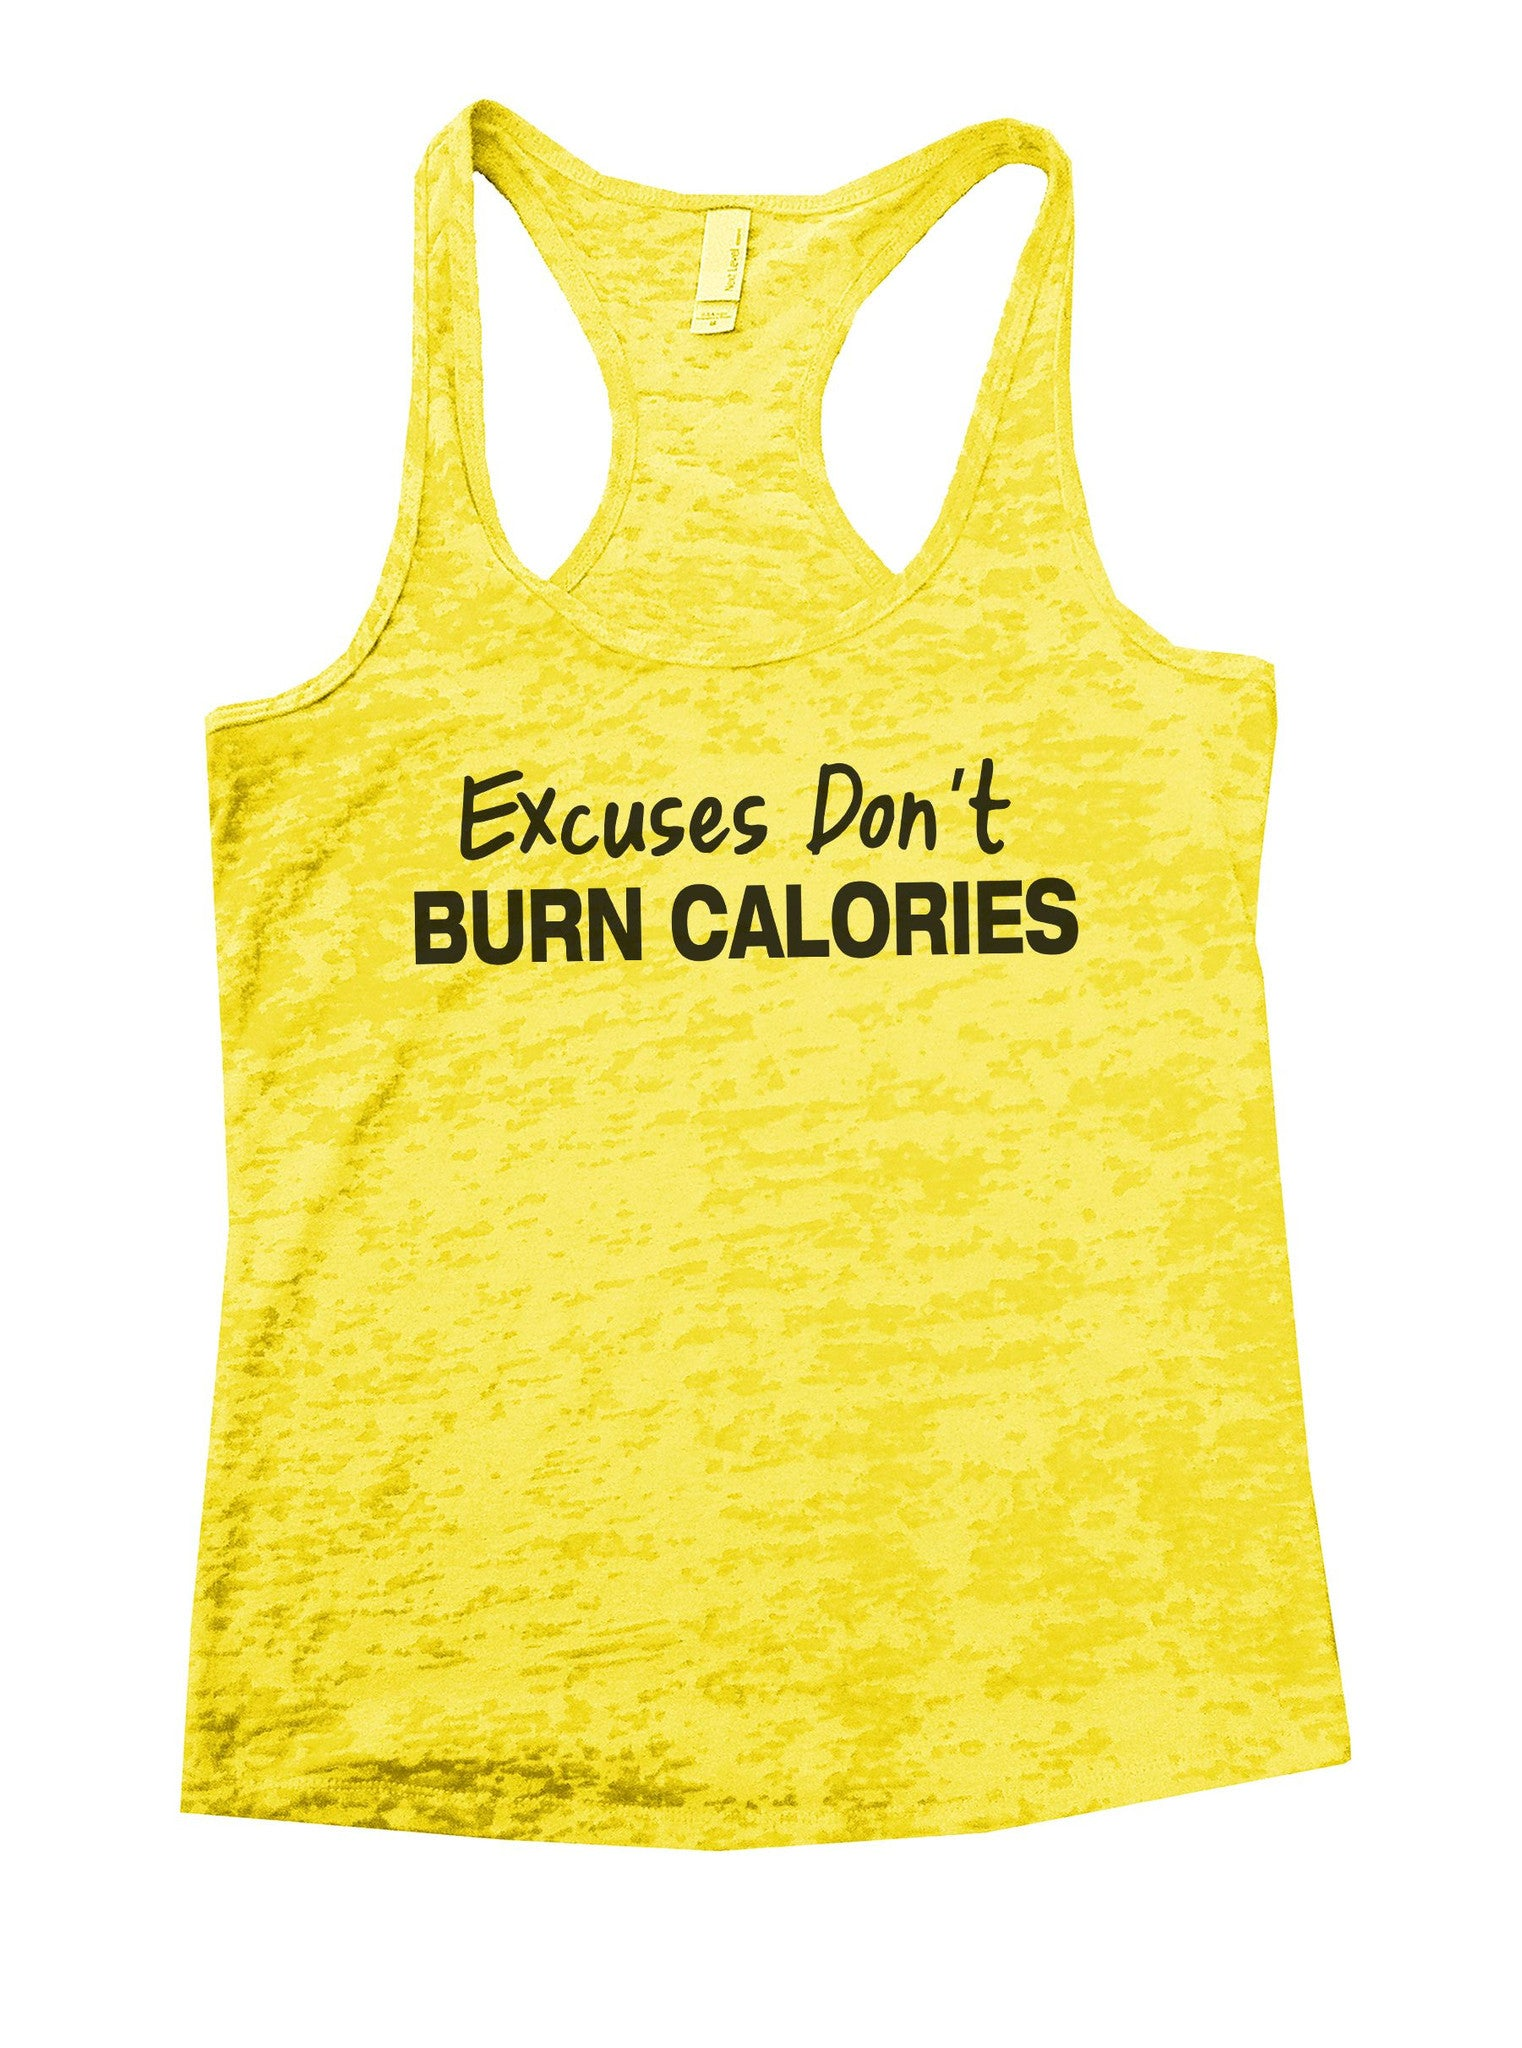 Excuses Don't Burn Calories Burnout Tank Top By BurnoutTankTops.com - 843 - Funny Shirts Tank Tops Burnouts and Triblends  - 7